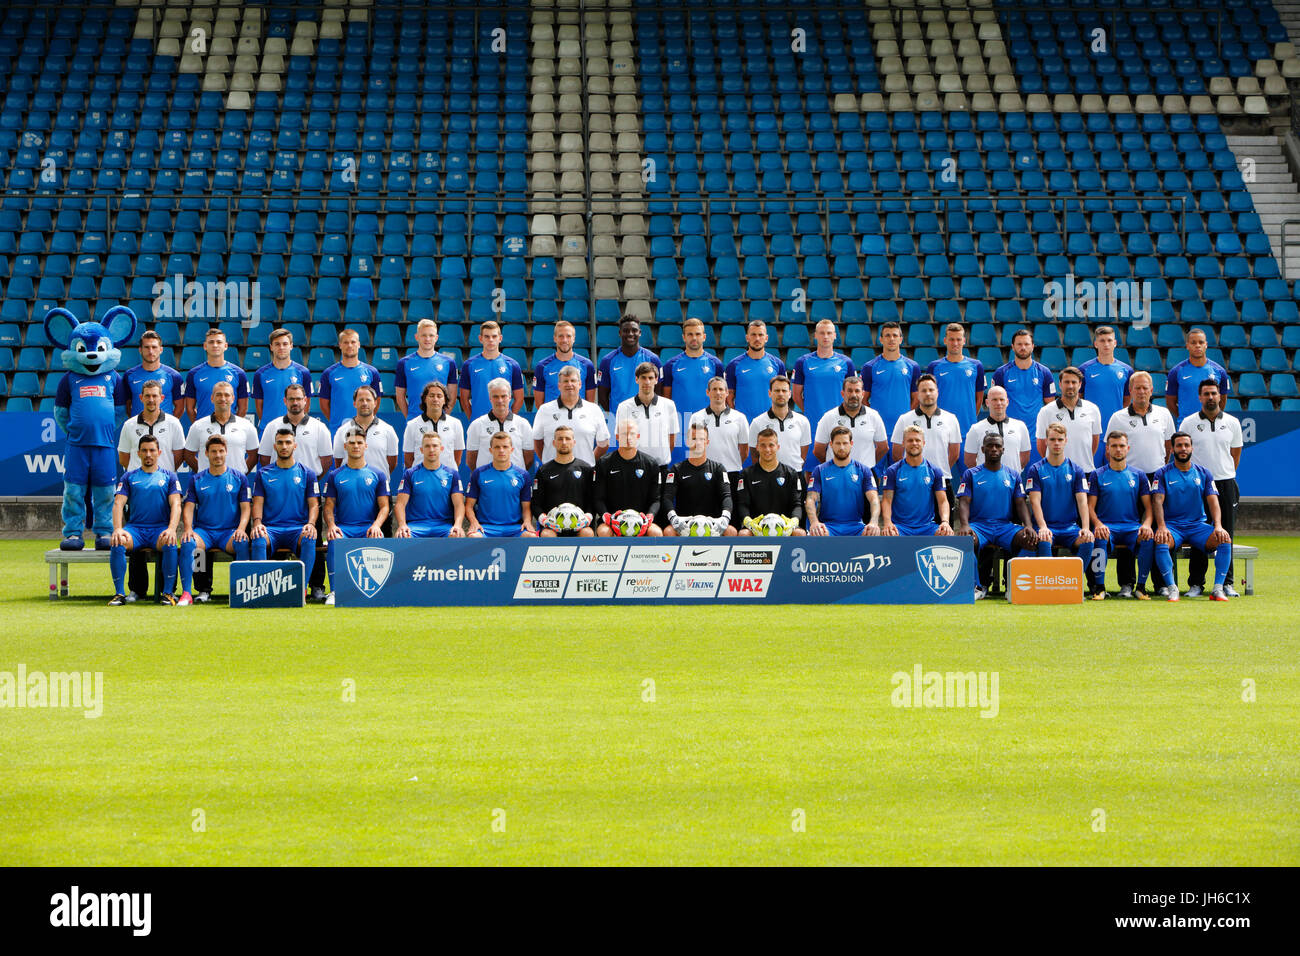 football, 2. Bundesliga, 2017/2018, VfL Bochum, team shot, row1 f.l. mascot, Diamantakos, Rieble, Baack, Wurtz, - Stock Image